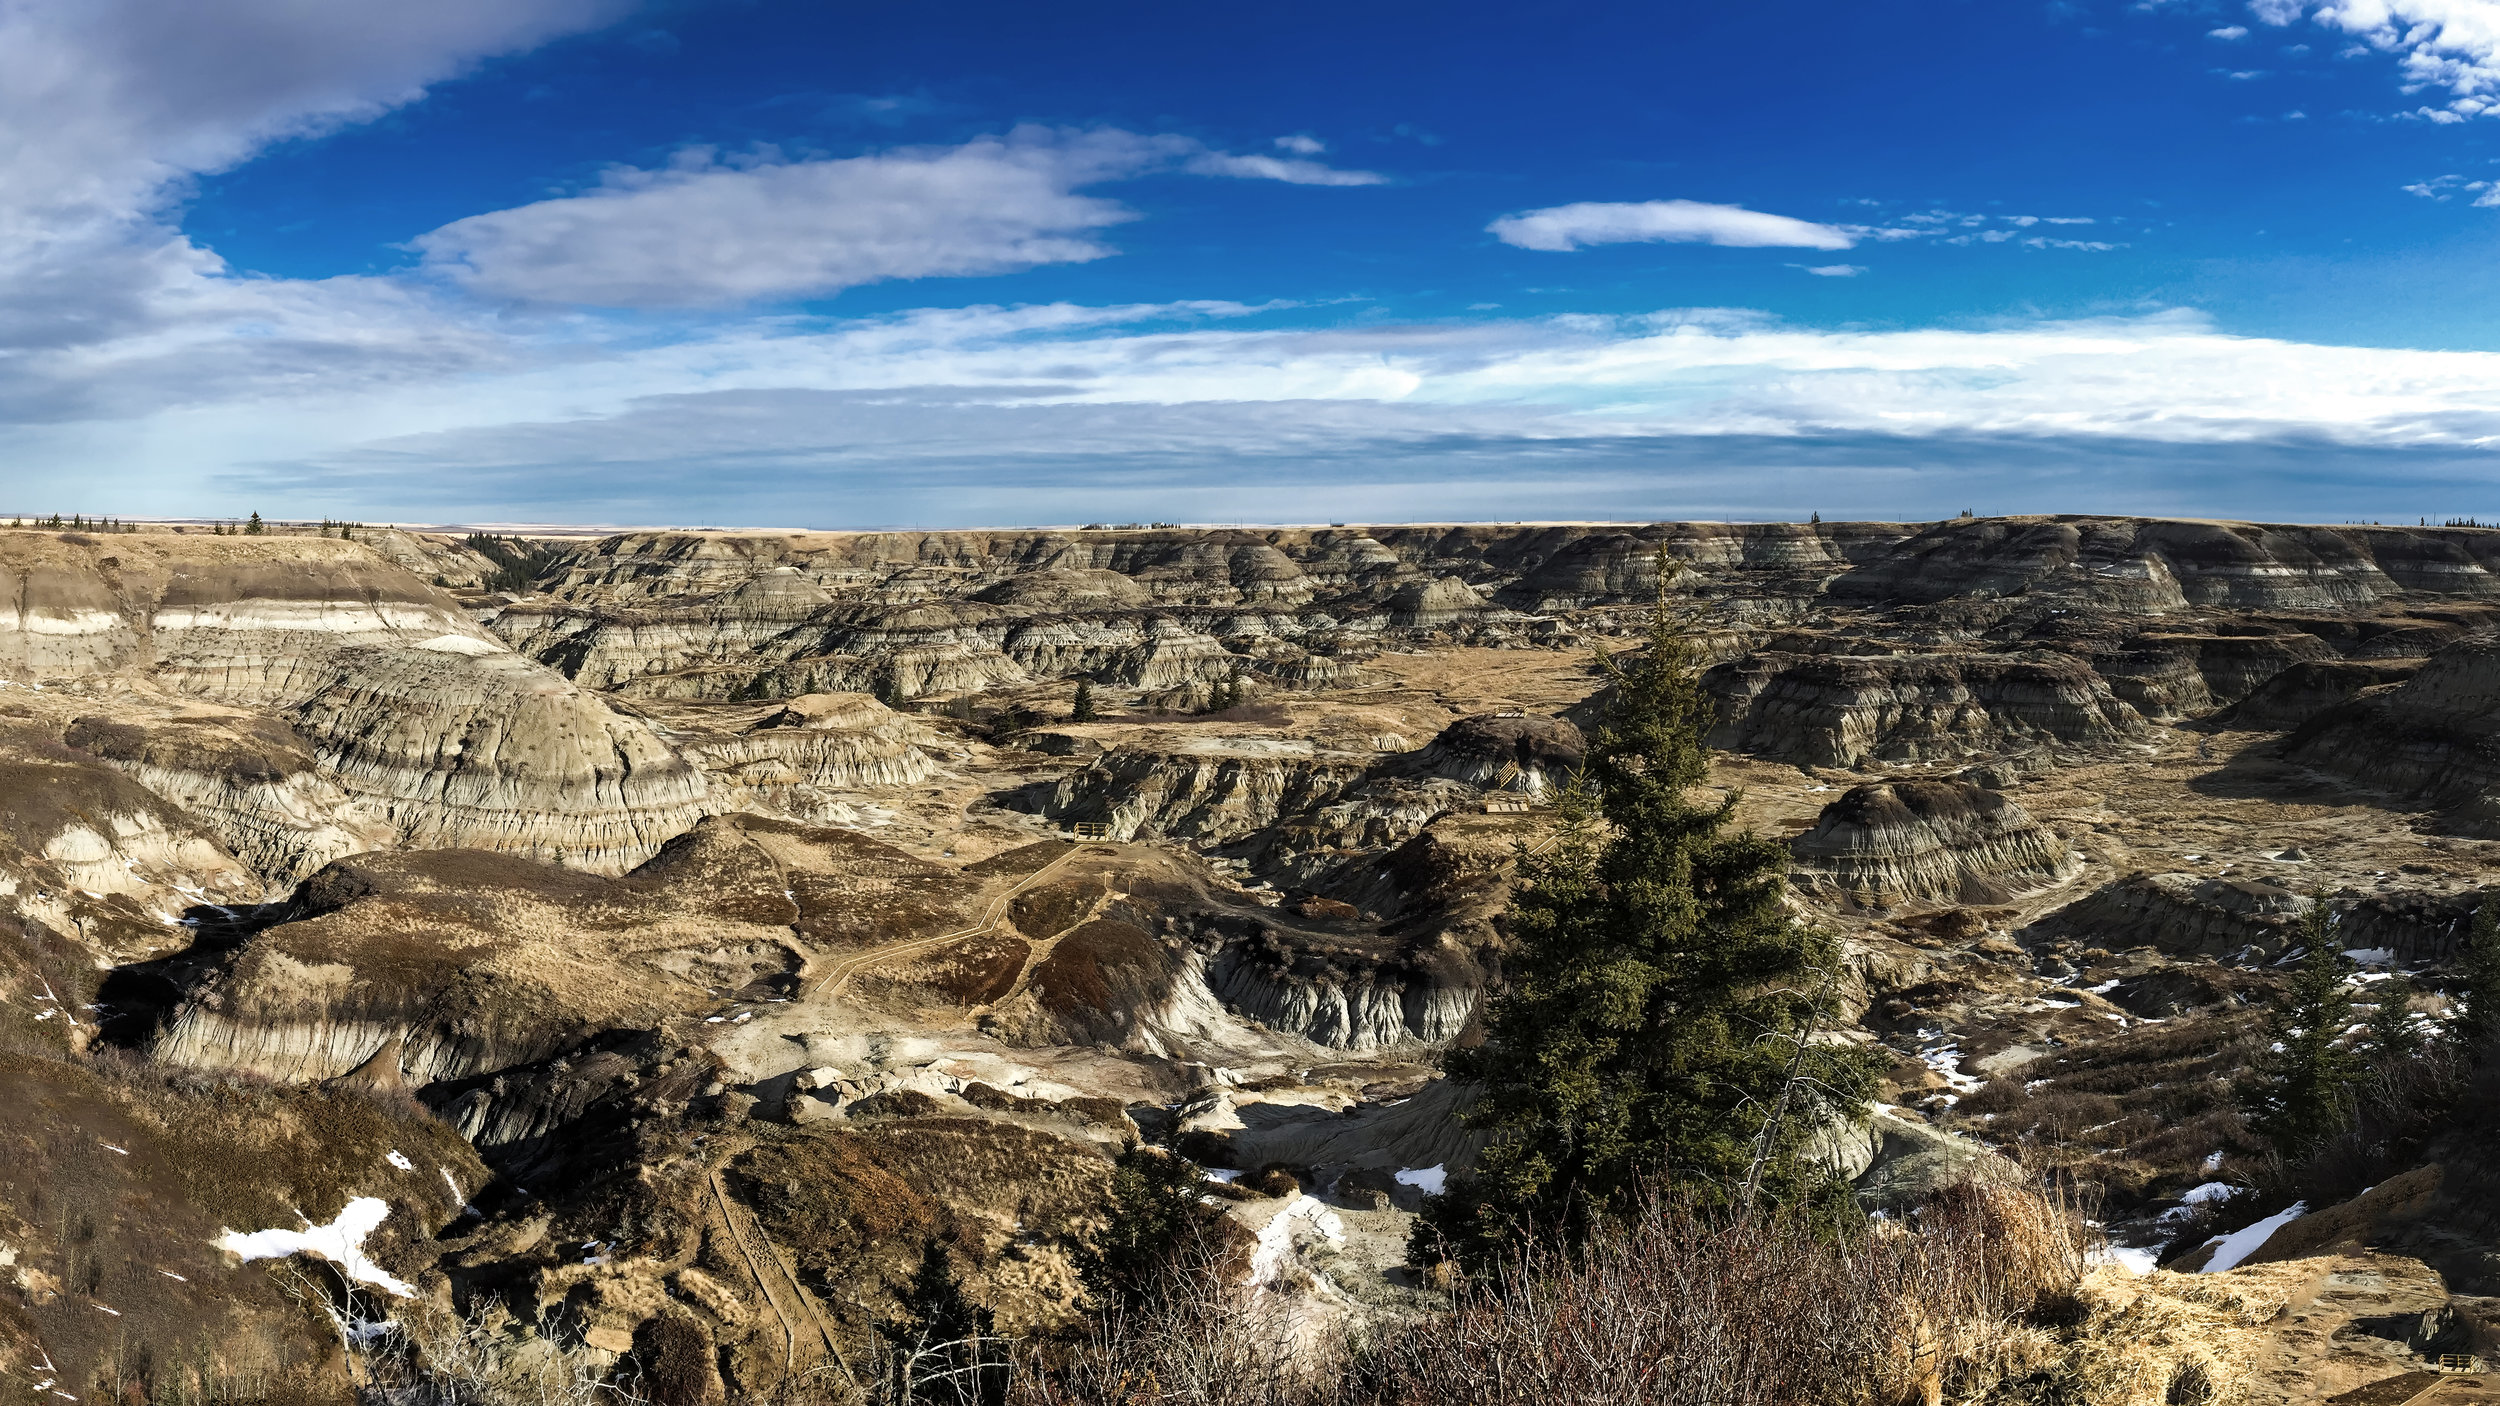 Horseshoe Canyon in the Canadian Badlands just SW of Drumheller - Photo Taken with an iPhone